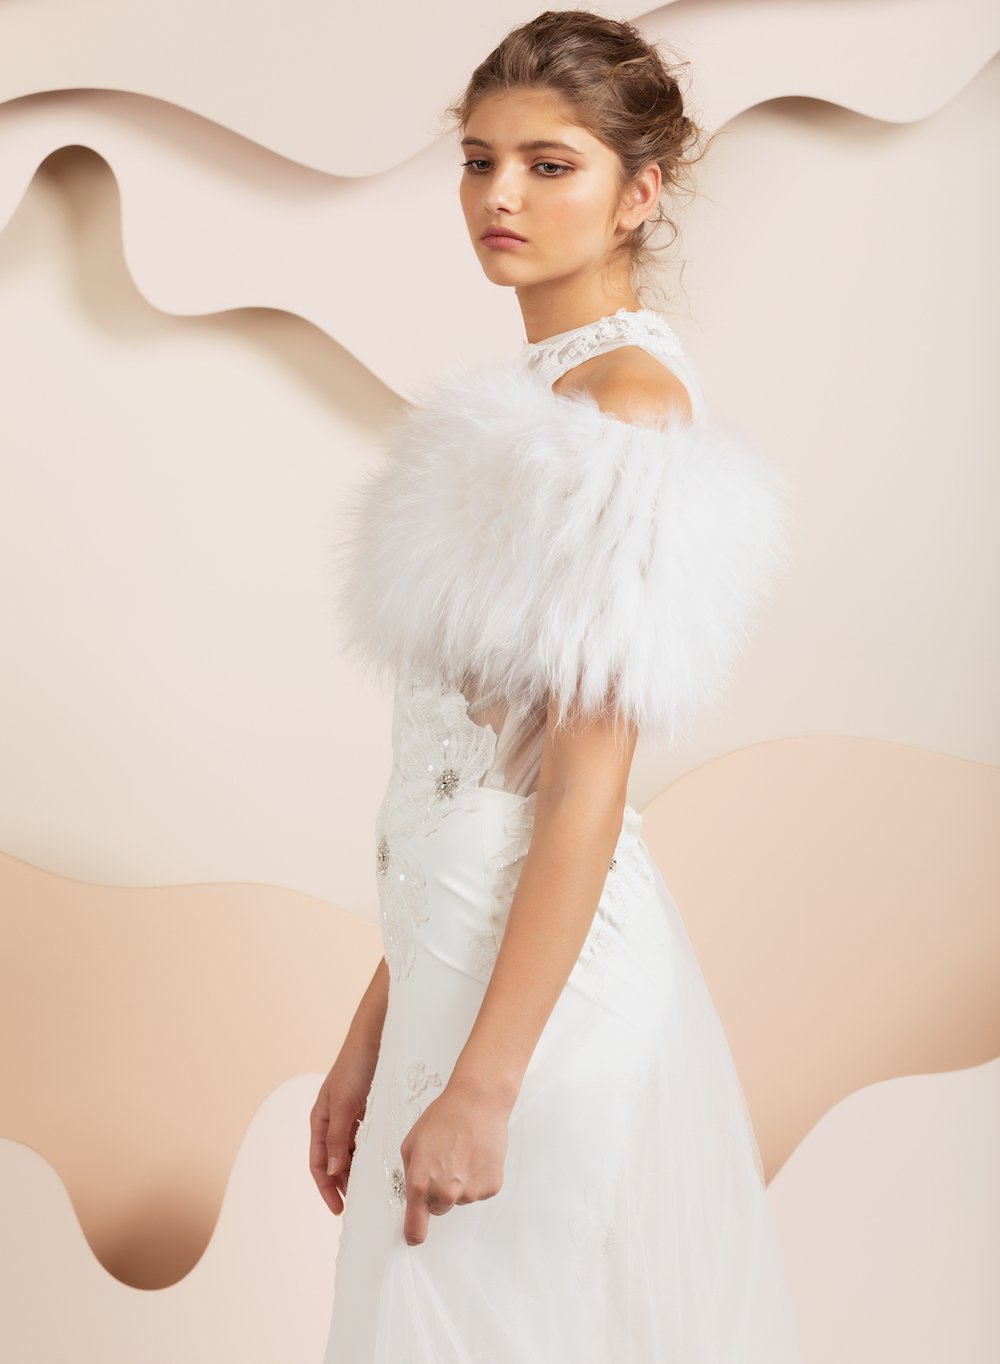 Daphne Fur Bridal Cover Up - White *10-12 Day Pre-Order